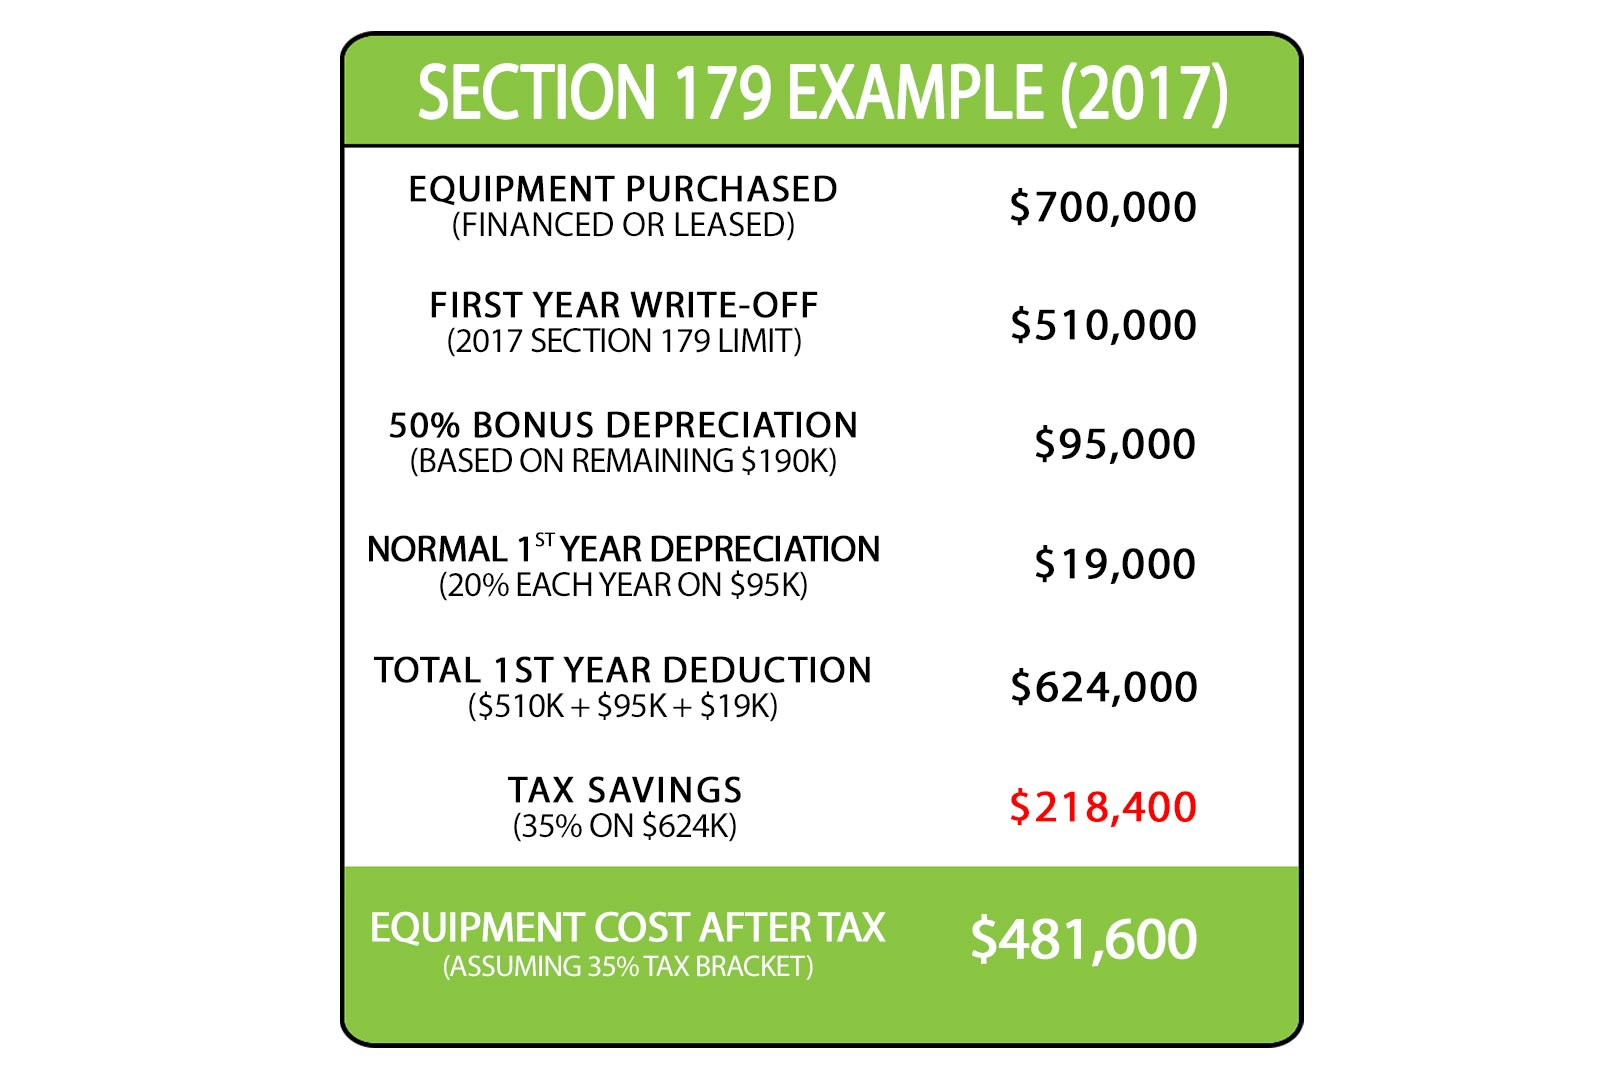 IRS Section 179 Tax Deduction for 2017